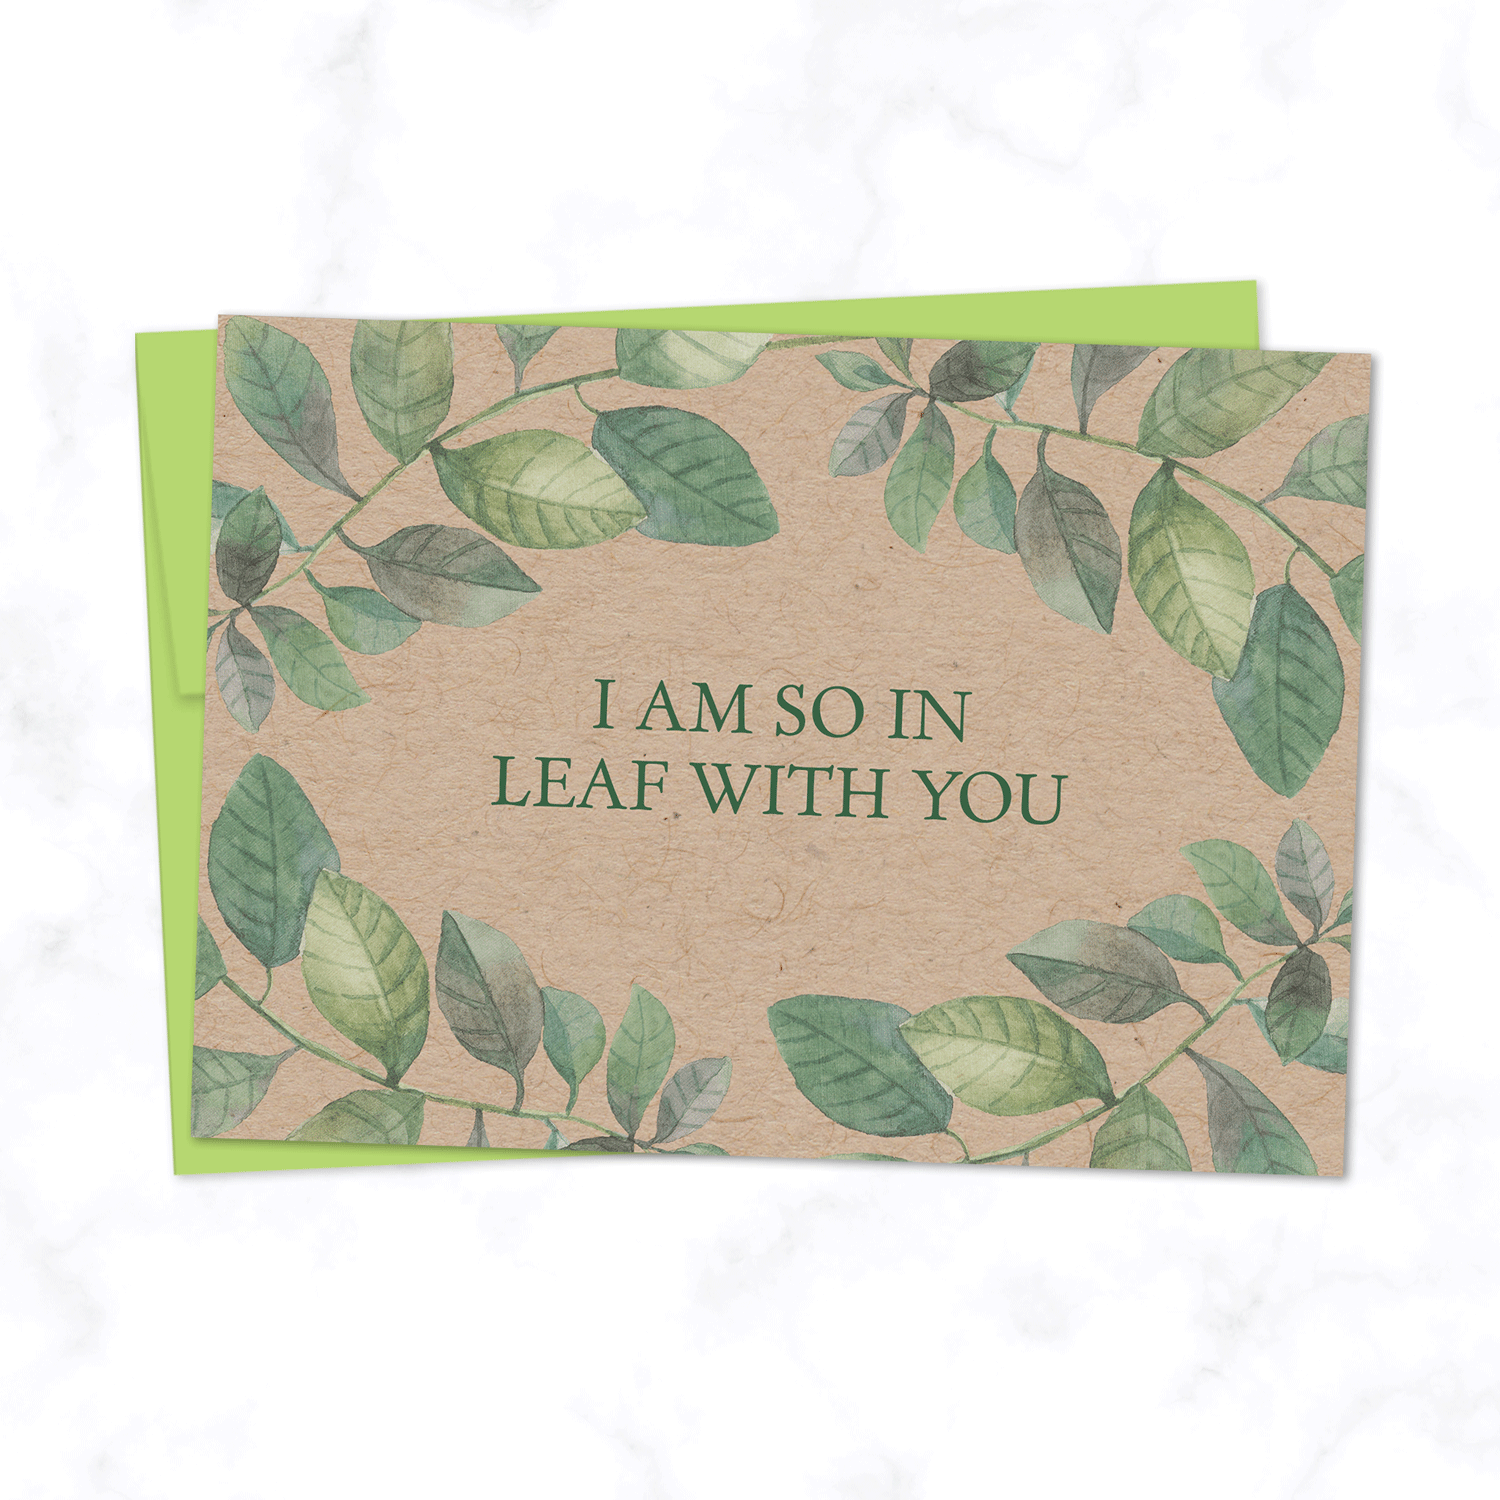 So in Leaf with You Illustrated Card with Watercolor Leaf Illustration for Valentine's Day or Anniversary - on Kraft paper with Green Envelope Included